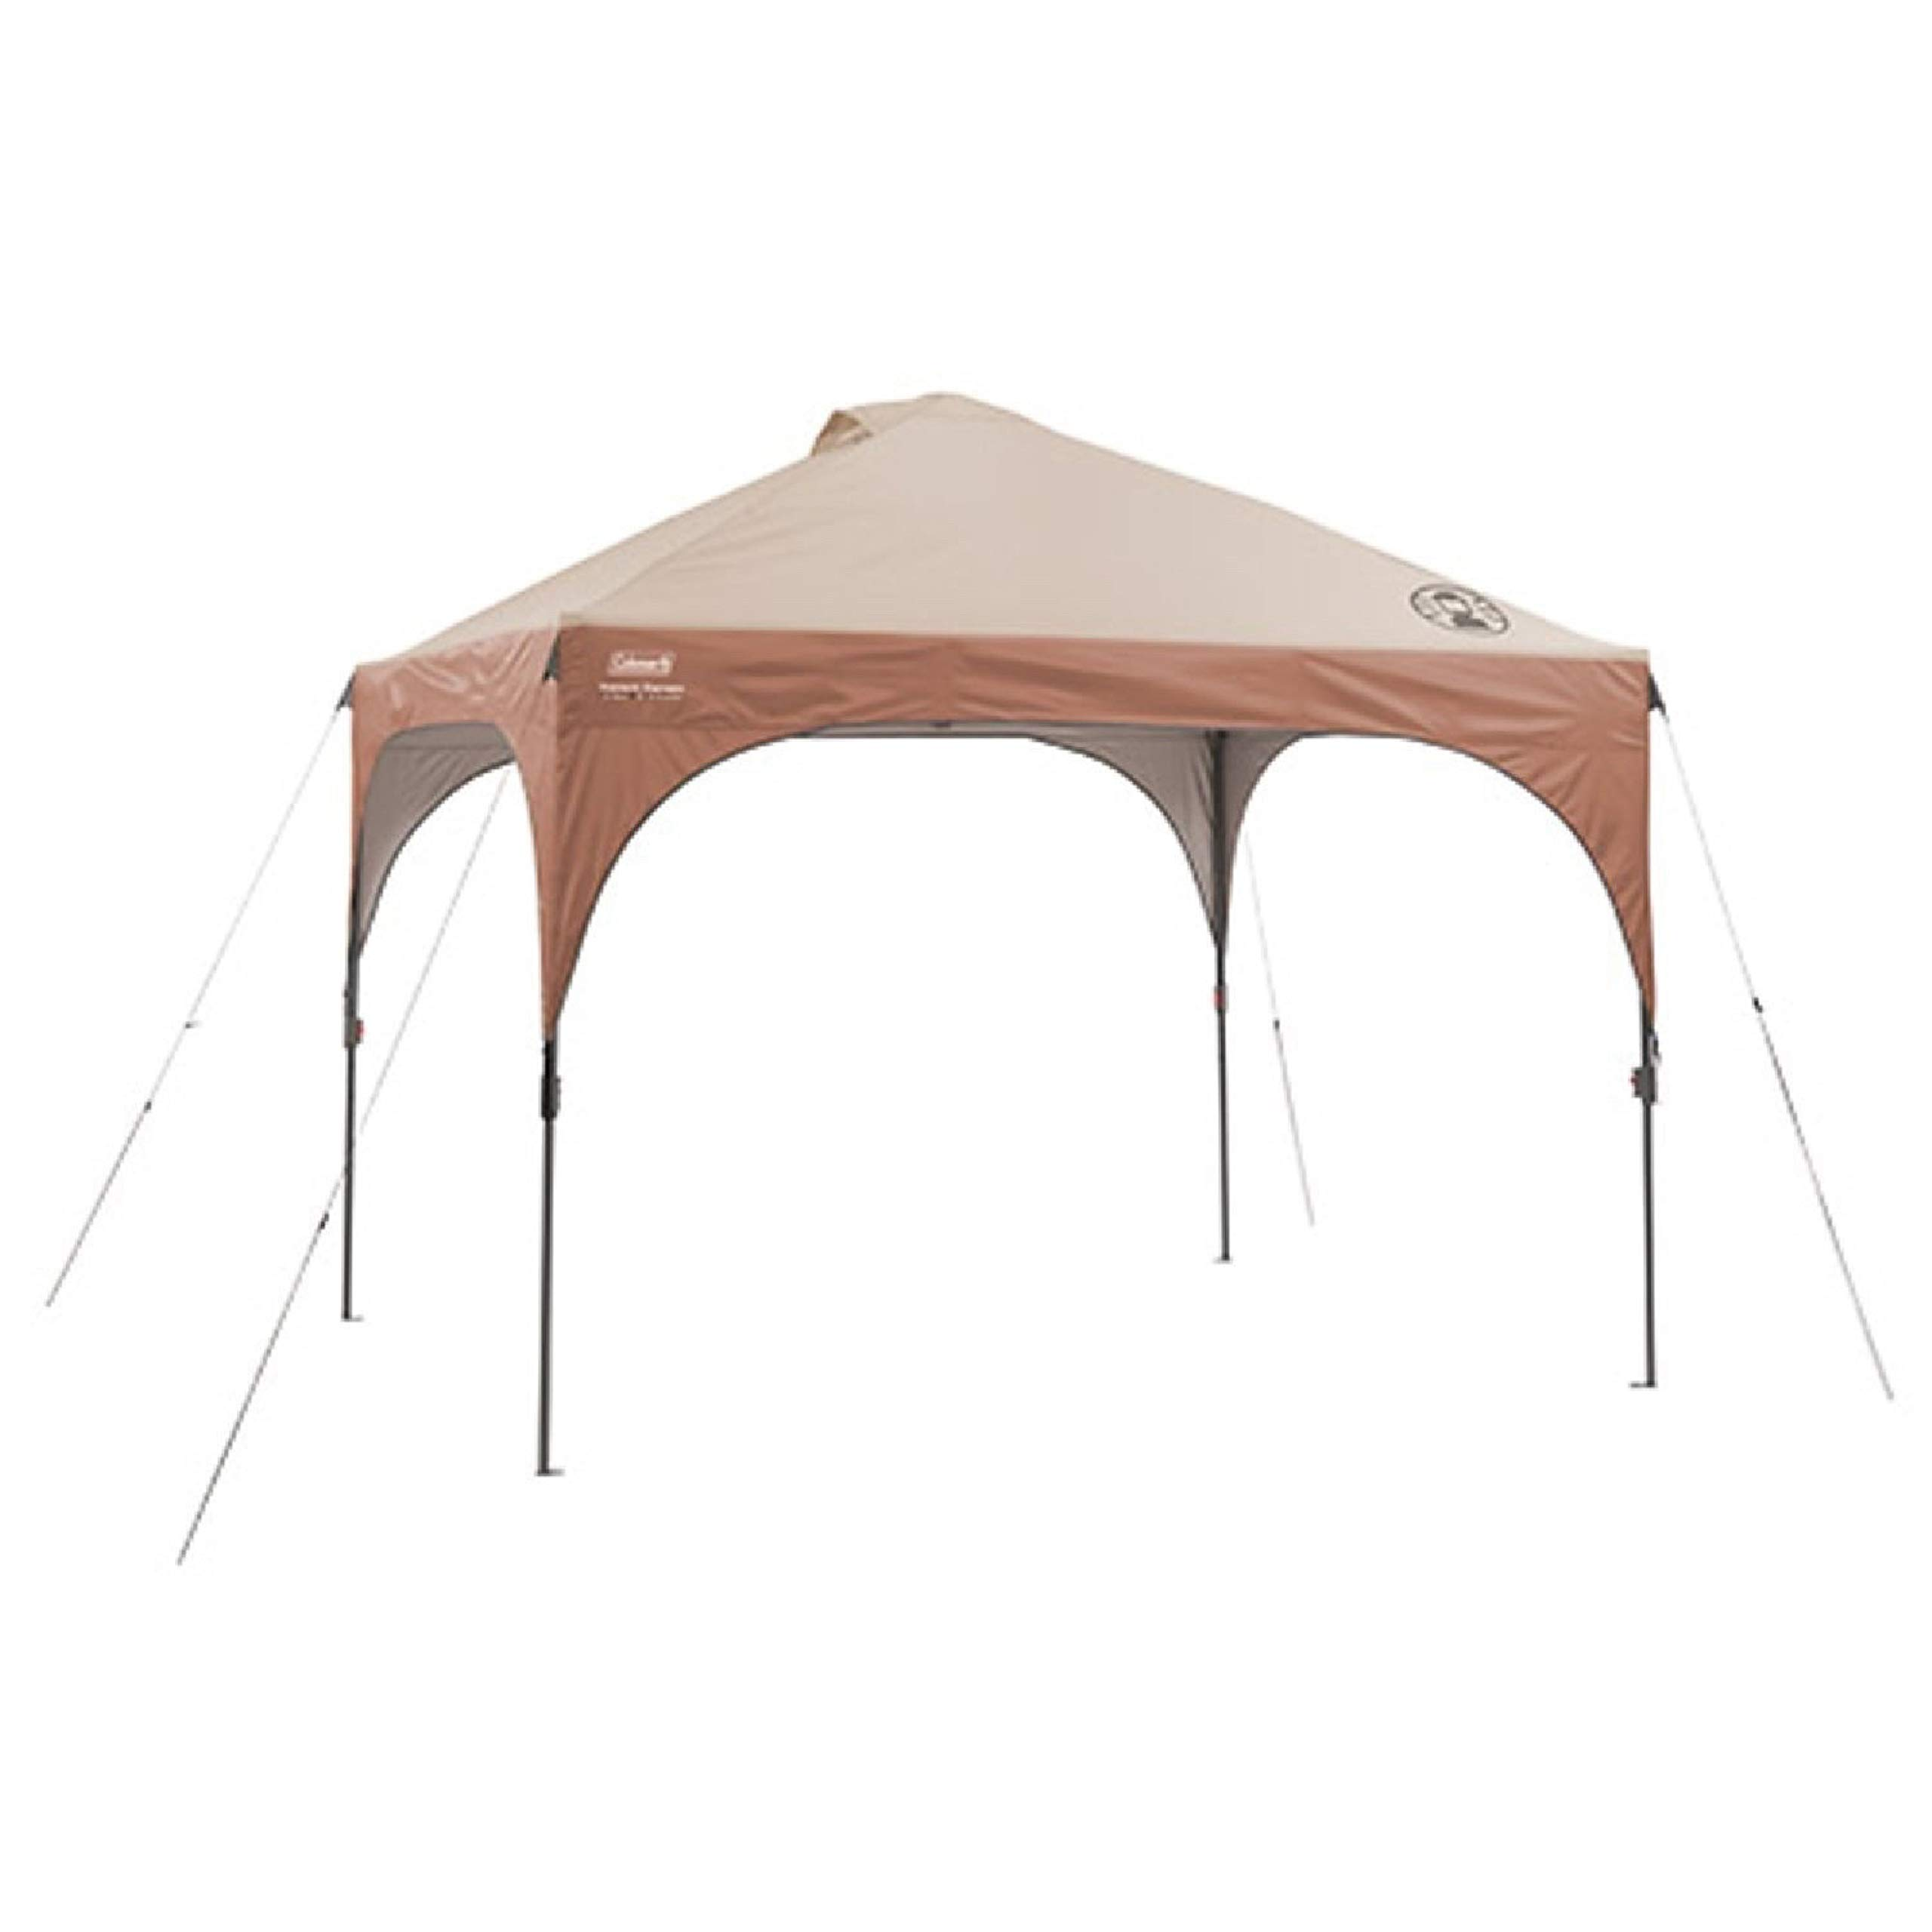 Coleman Instant Pop-Up Canopy Tent and Sun Shelter with LED Lighting, 10 x 10 Feet by Coleman (Image #9)